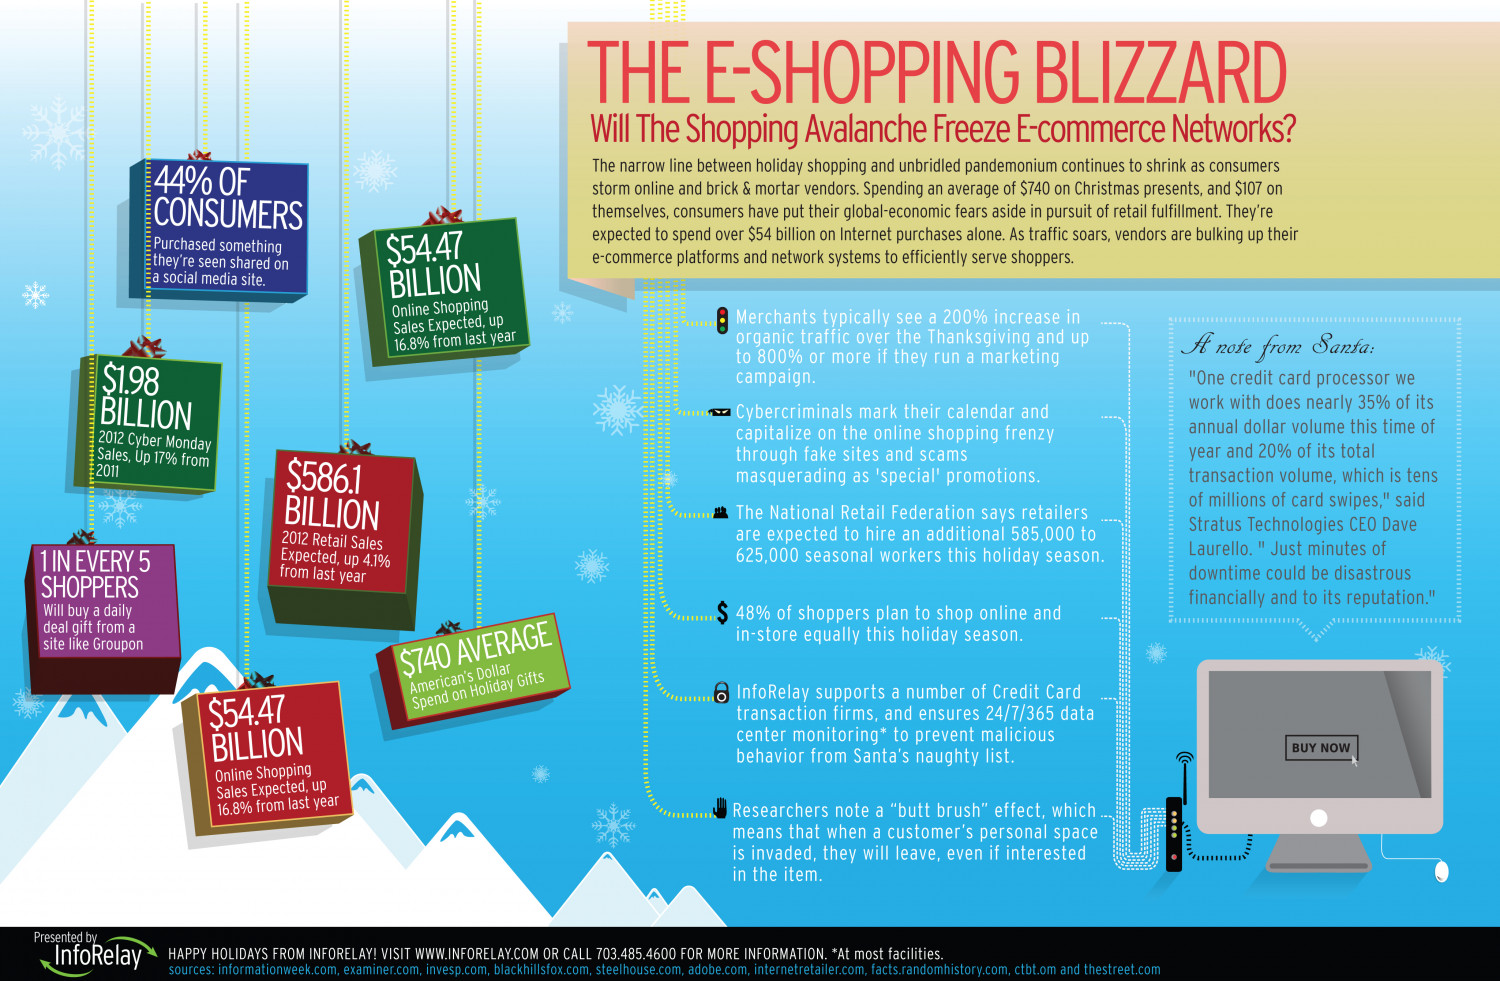 The E-Shopping Blizzard Infographic